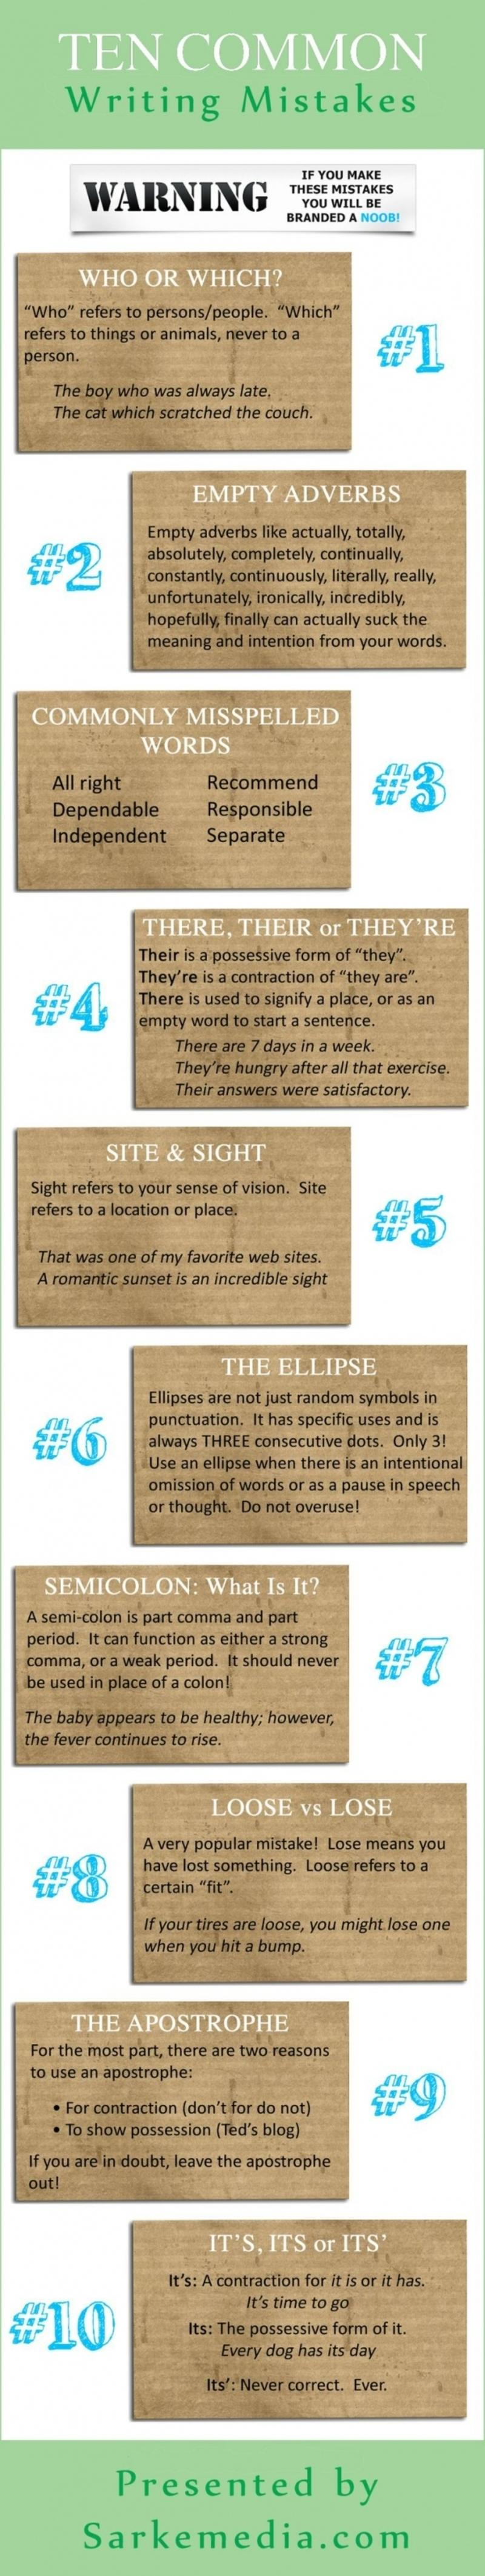 Ten Common Writing Mistakes Infographic